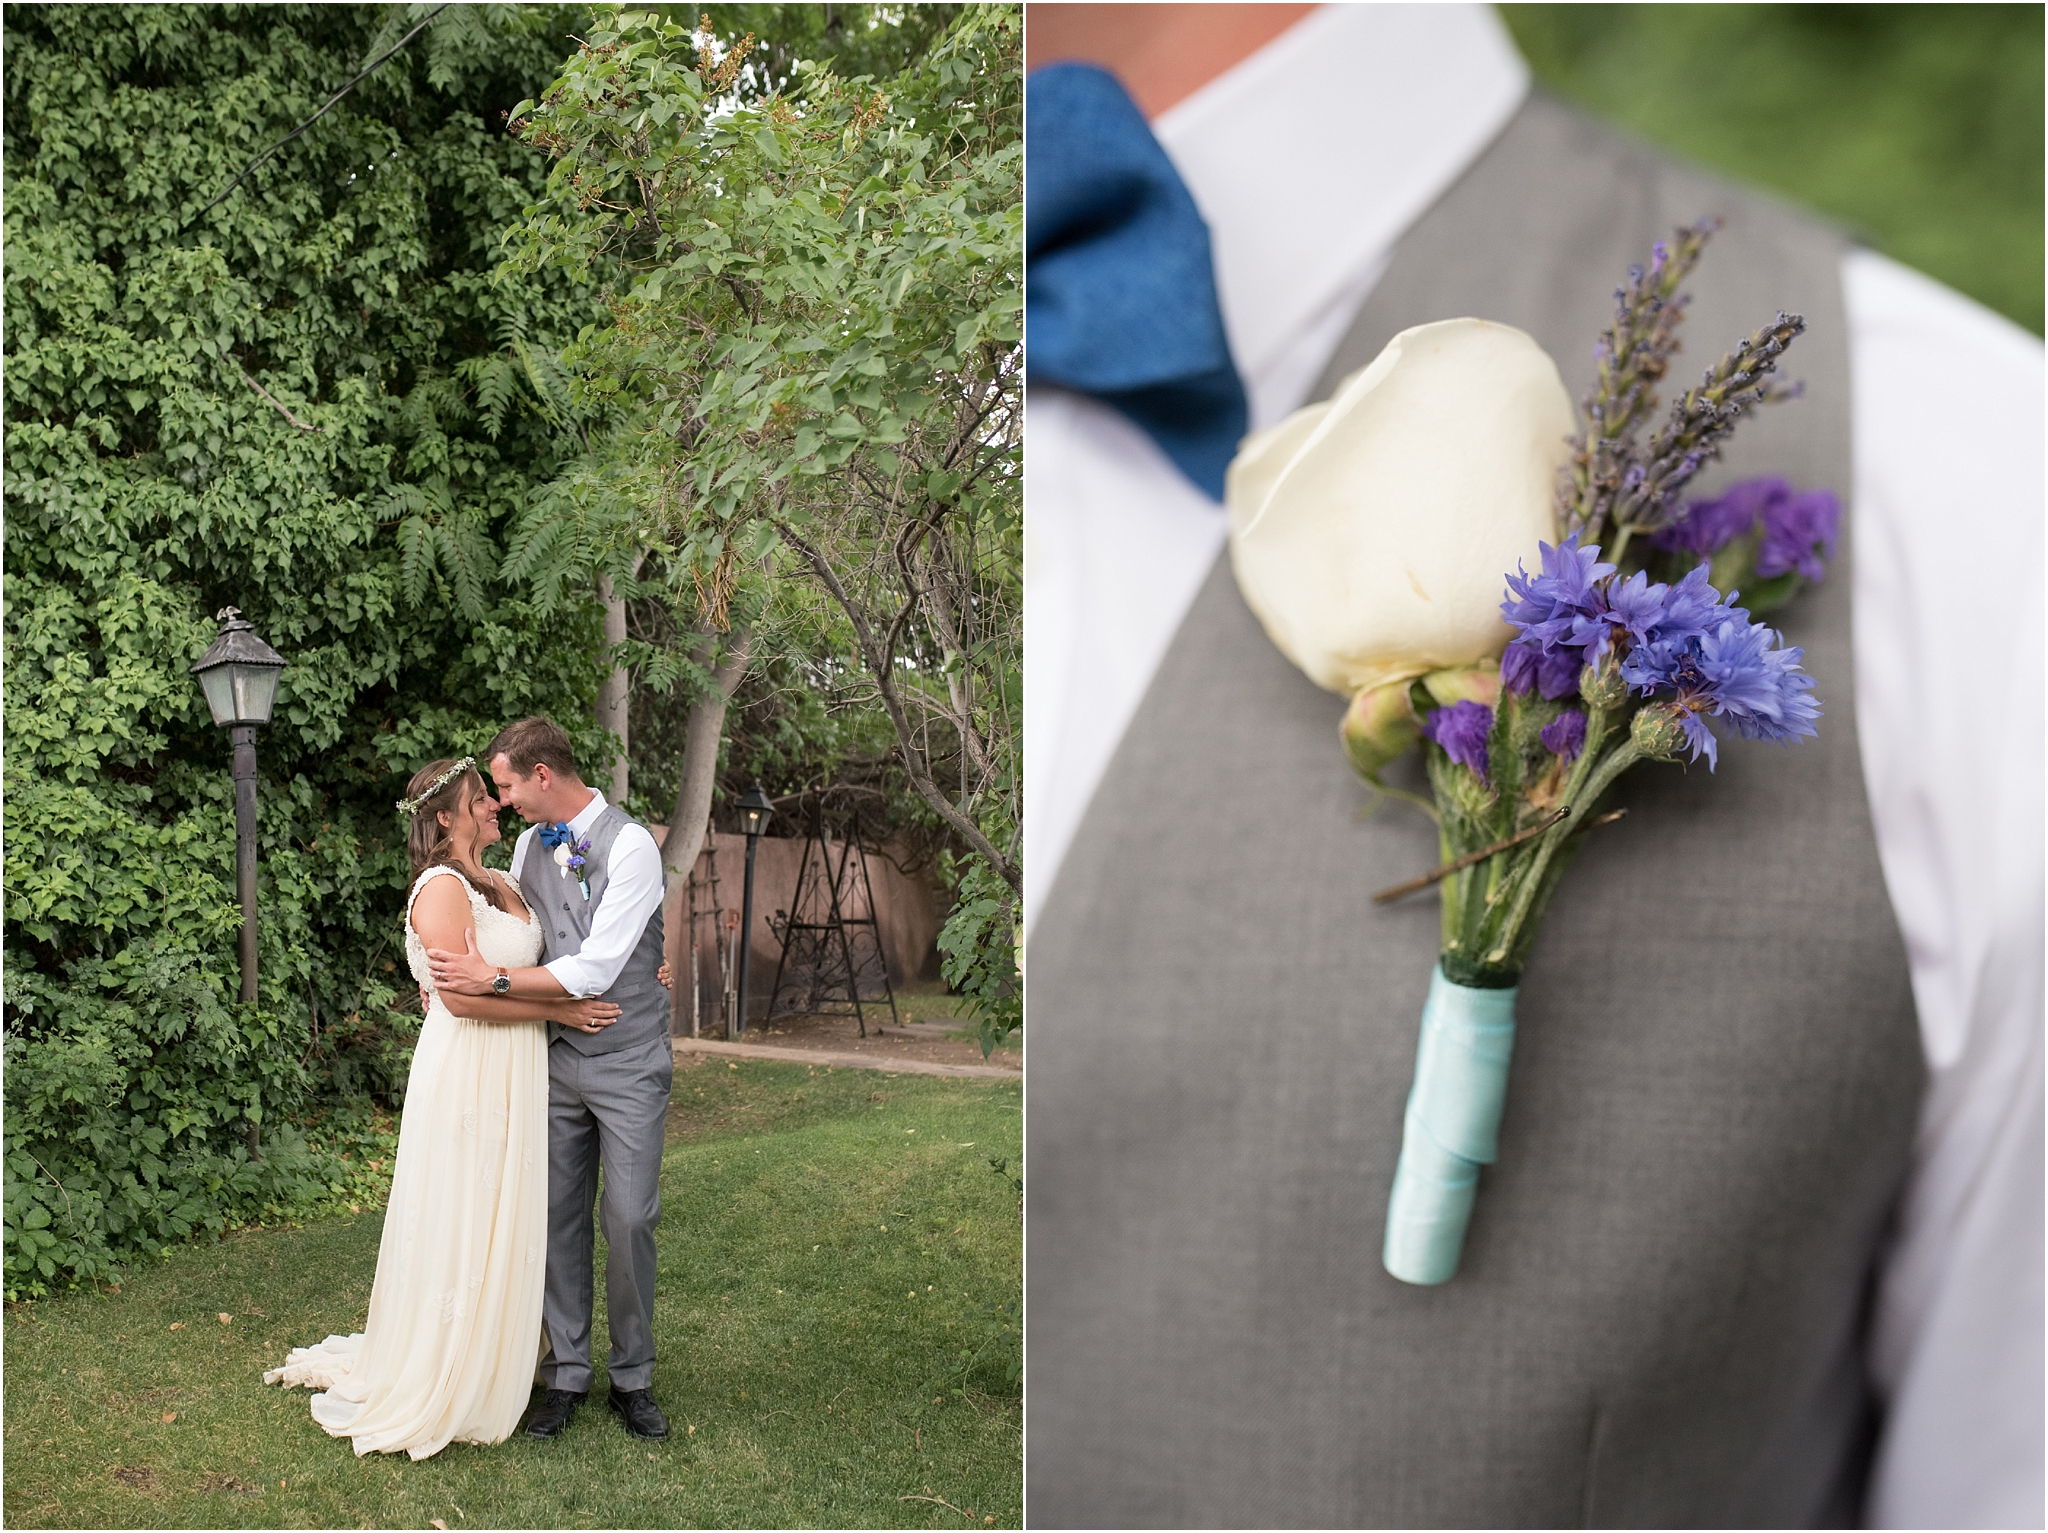 kayla kitts photography - new mexico wedding photographer - albuquerque botanic gardens - hotel albuquerque-casa de suenos_0213.jpg